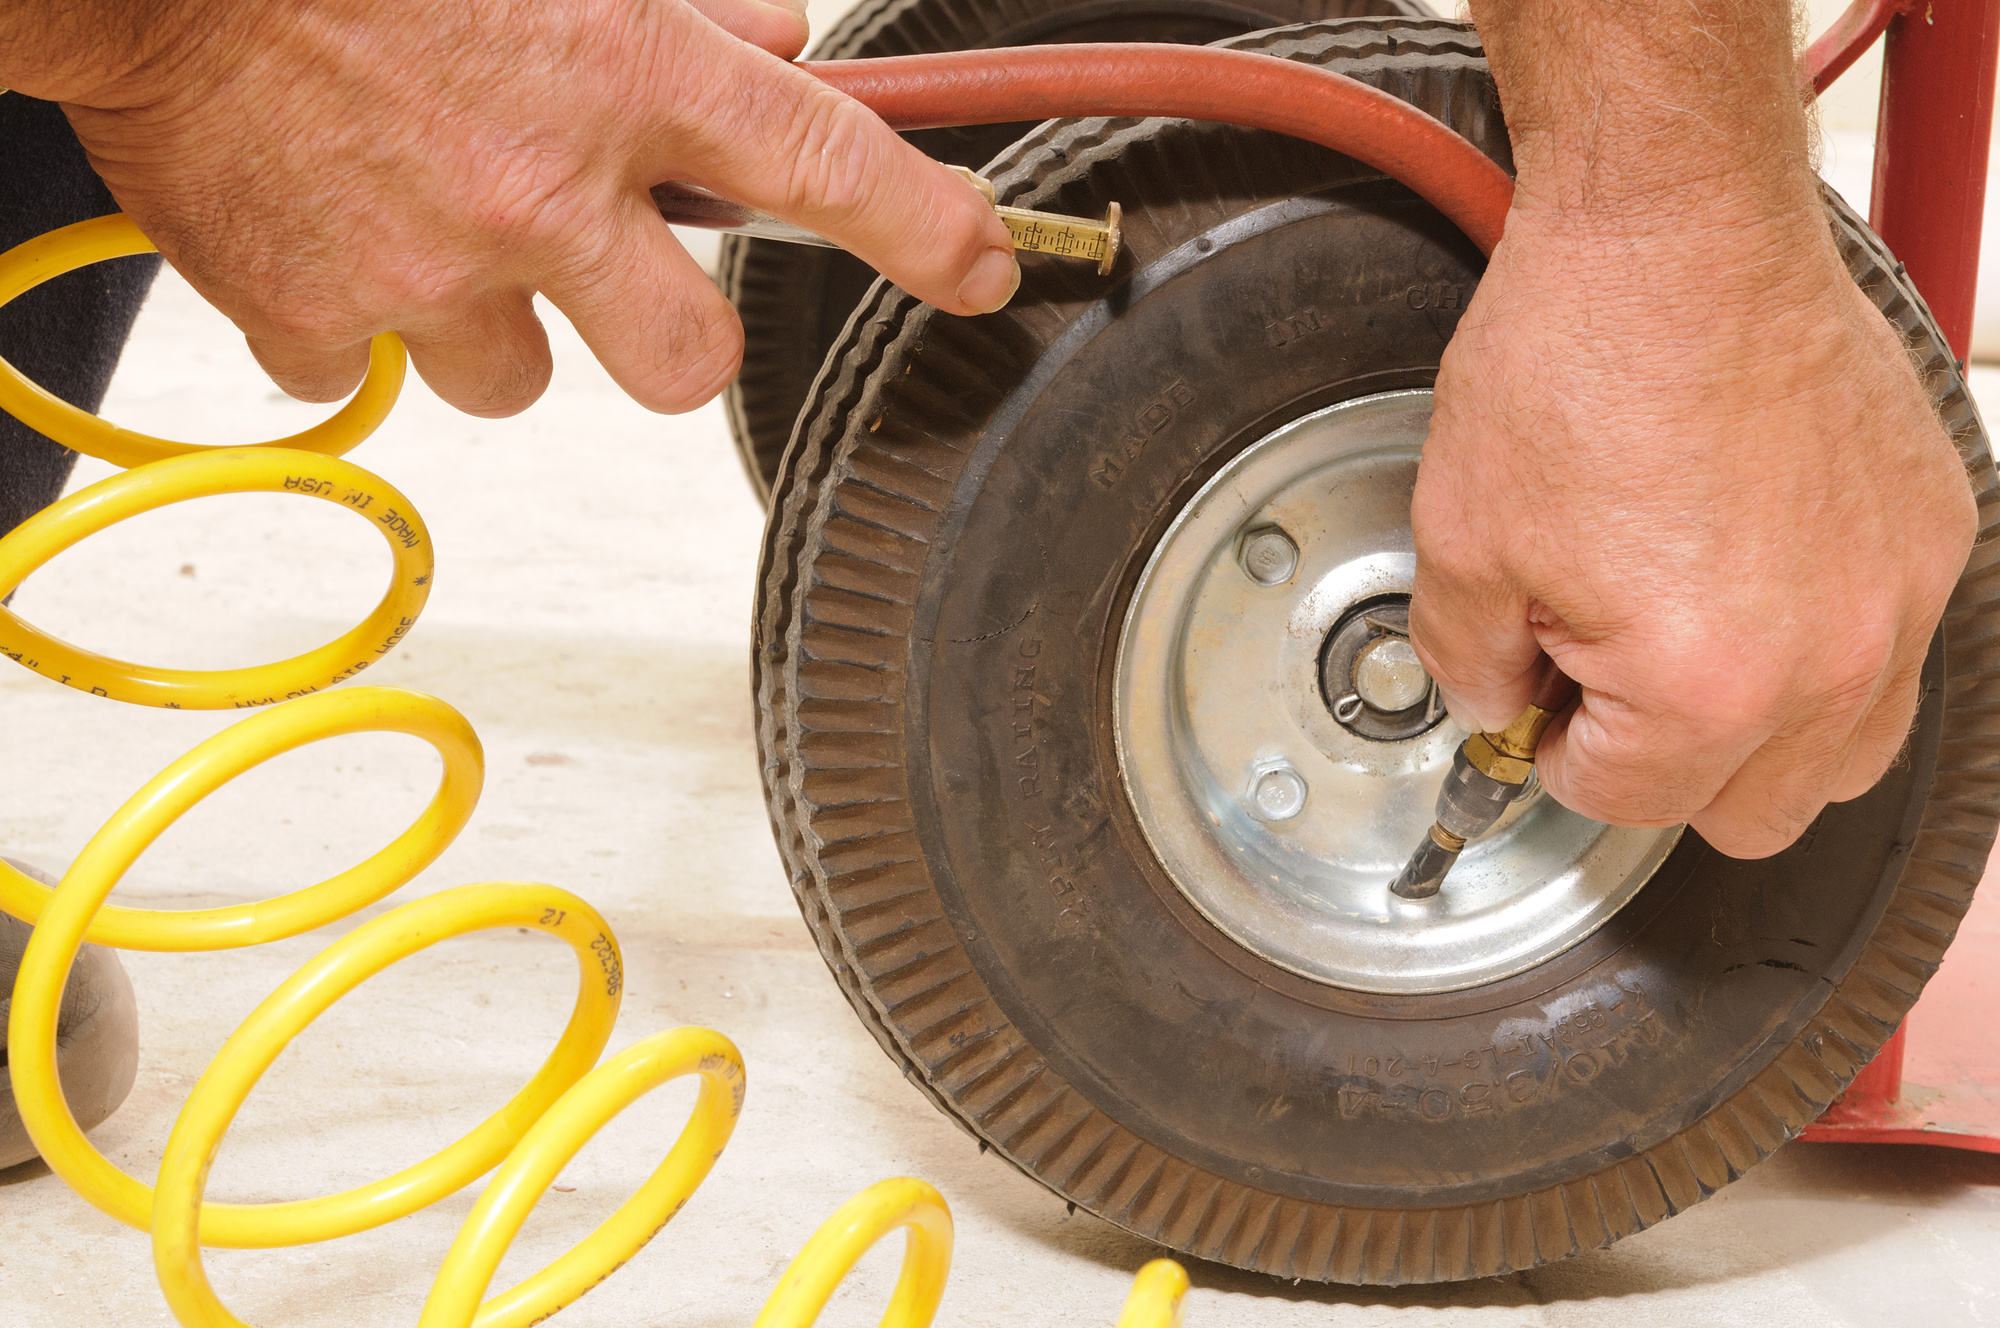 How To Use An Air Compressor >> Air Force Your Guide How To Use An Air Compressor And What To Use